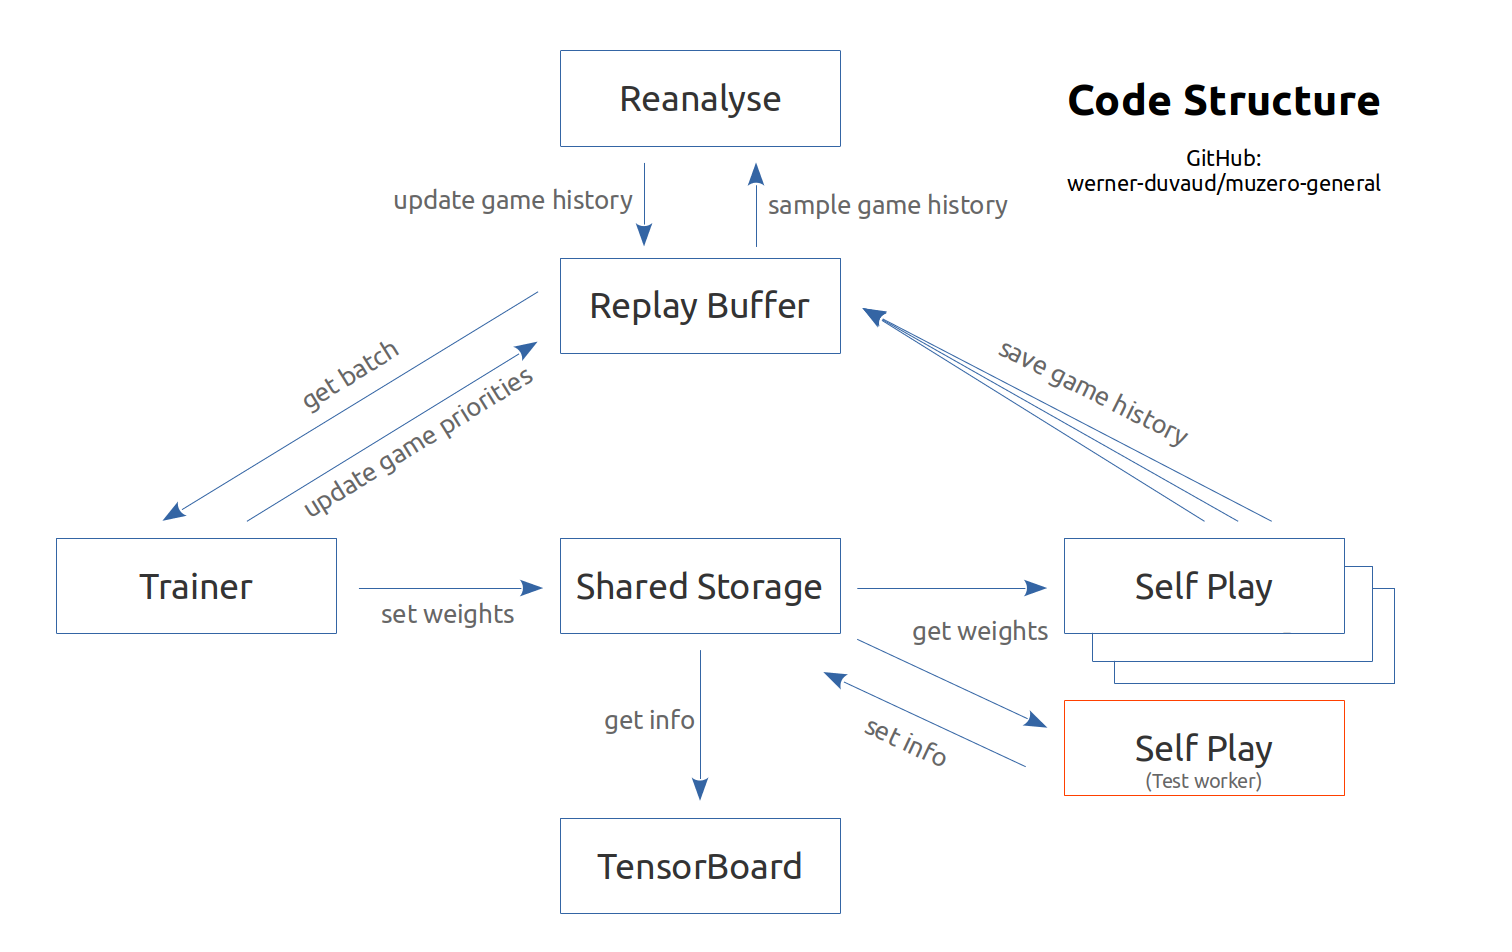 code structure